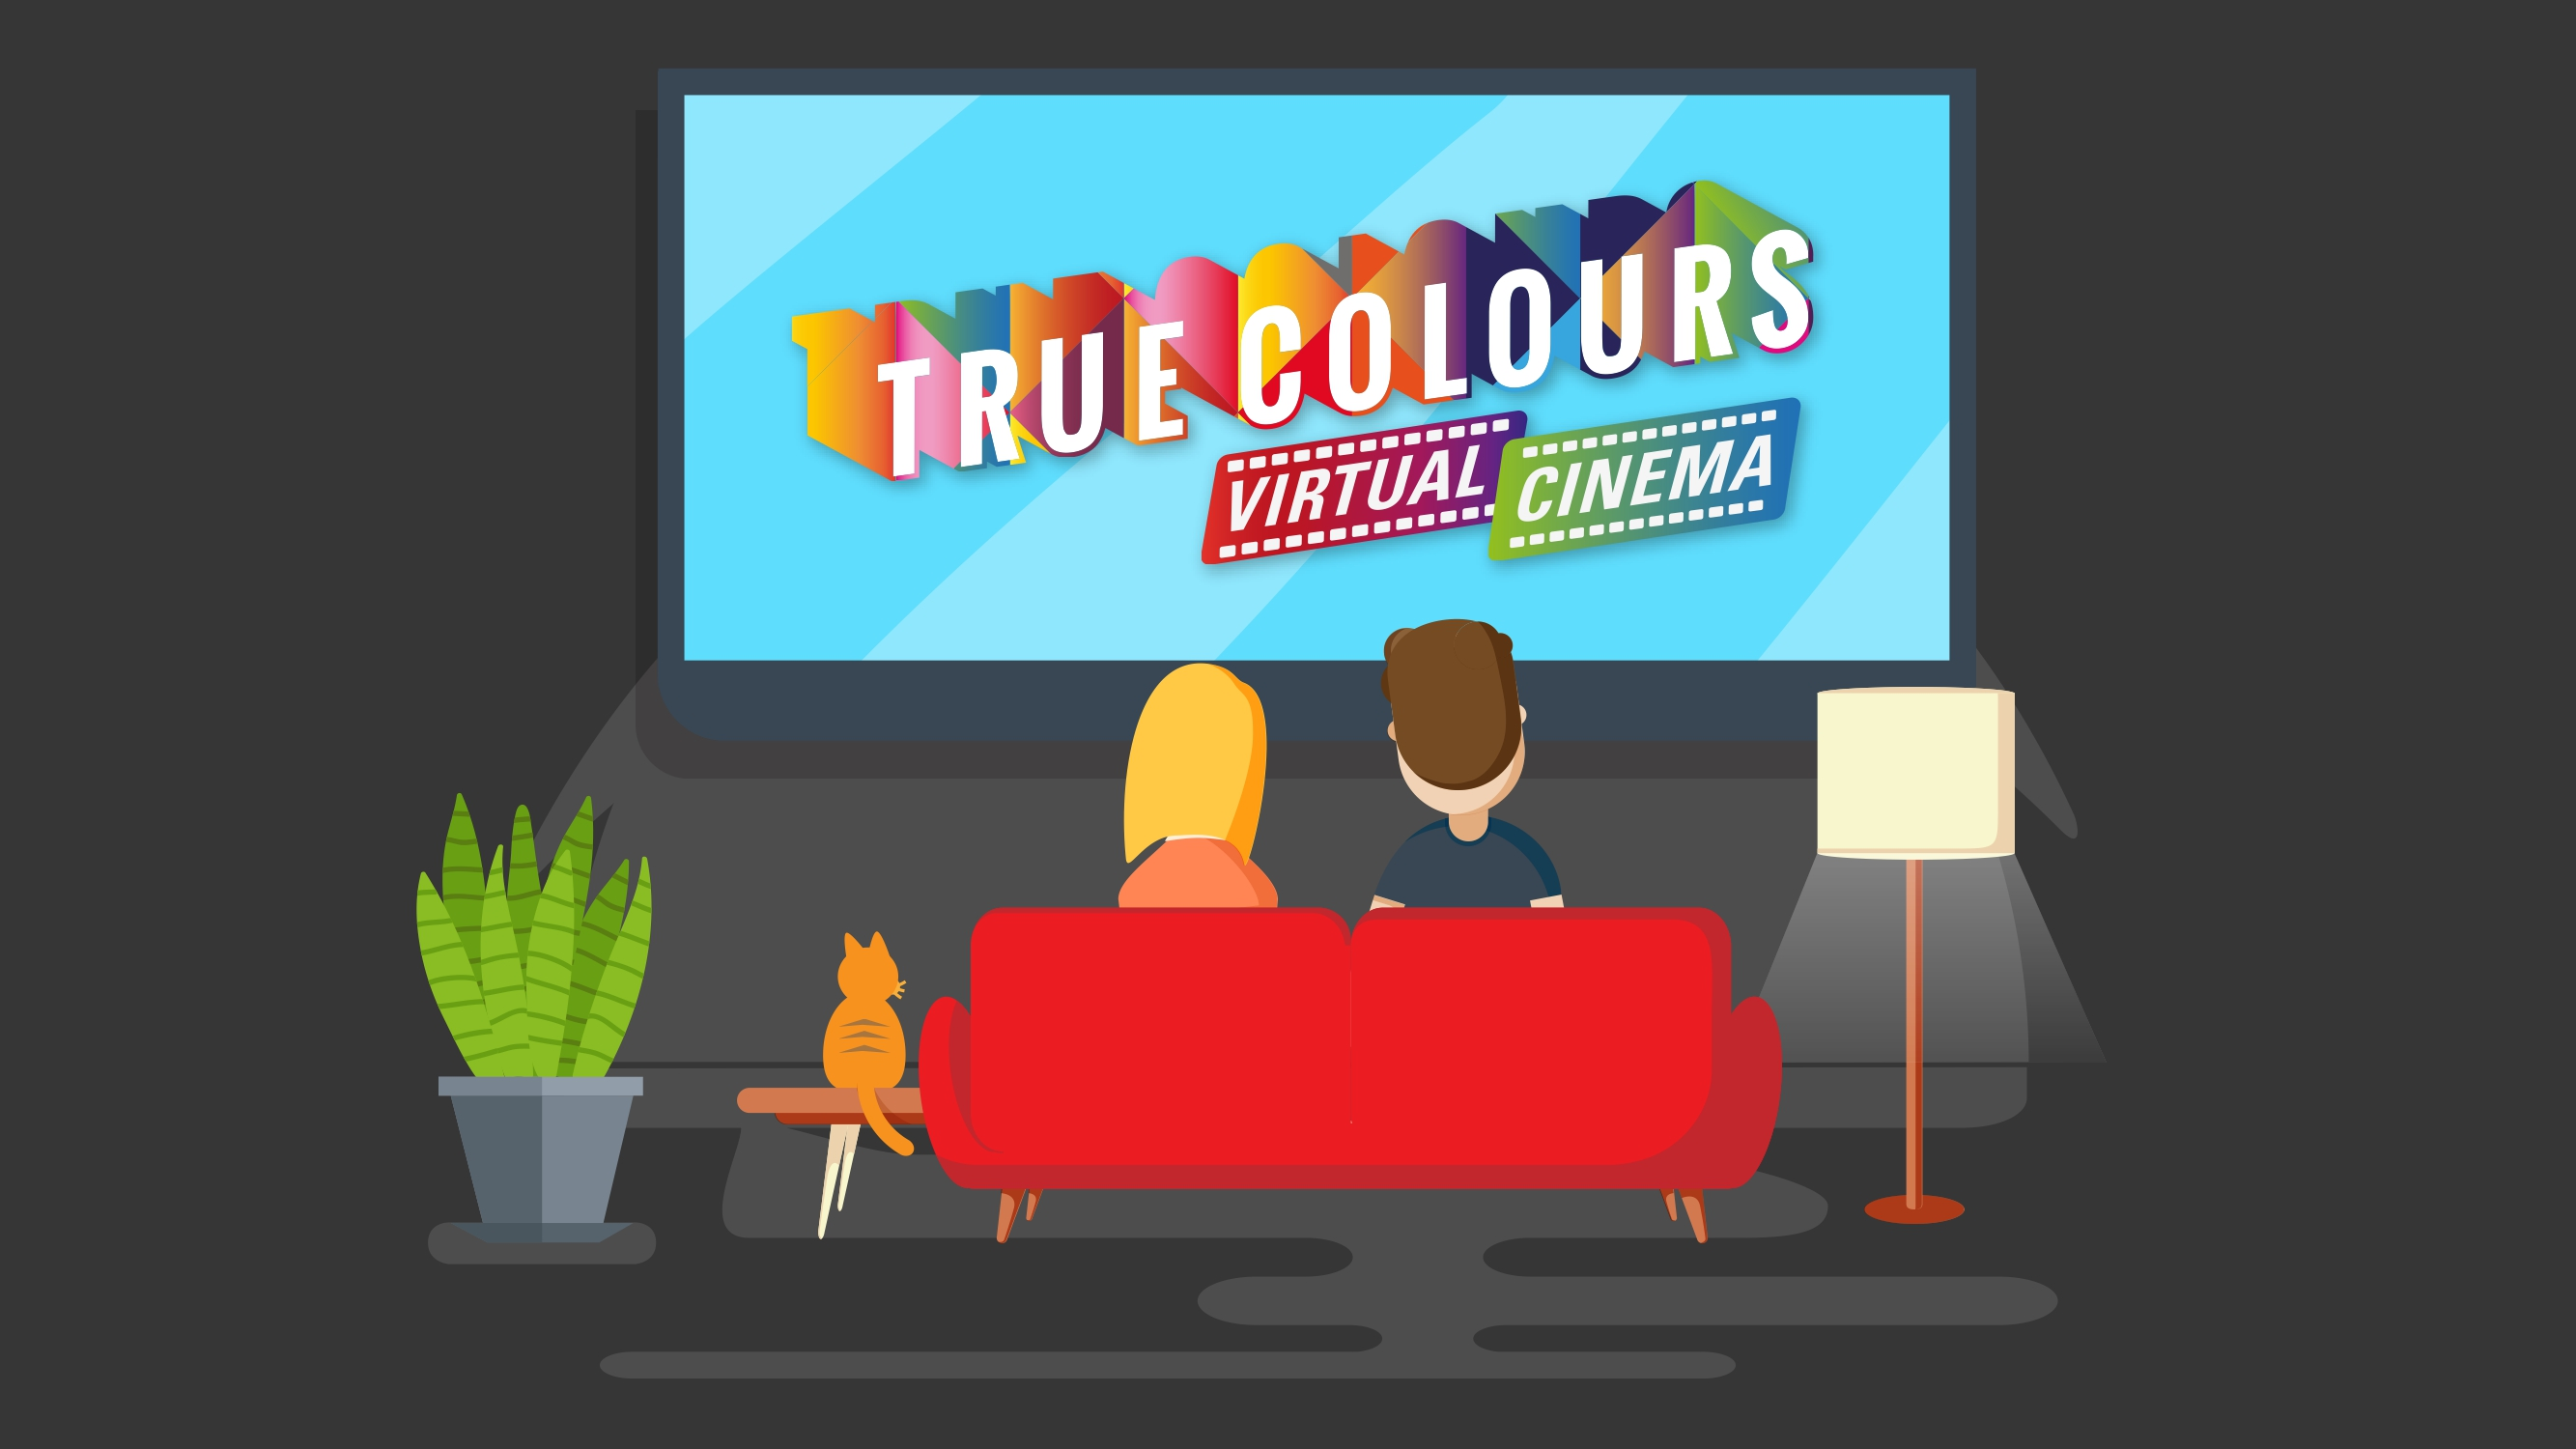 Nasce la sala virtuale True Colours